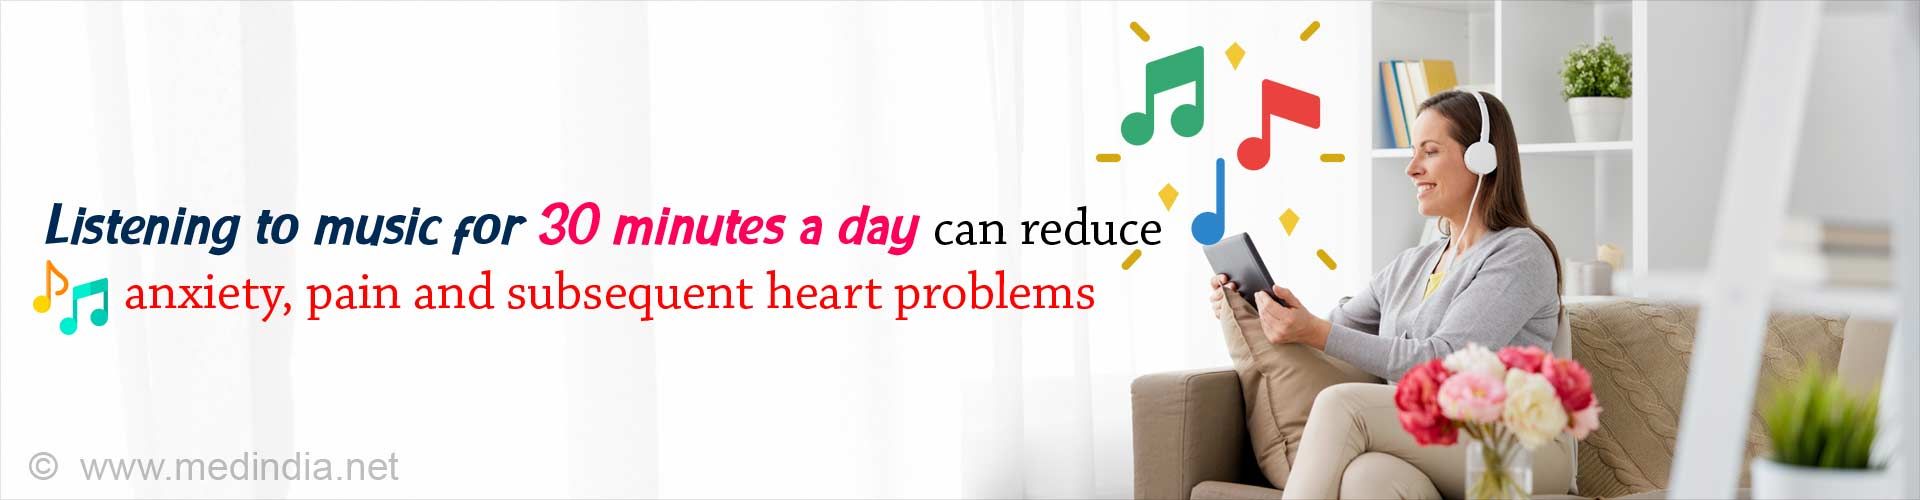 Music as Medicine: 30 Minutes of Music Everyday ''Good'' for Your Heart